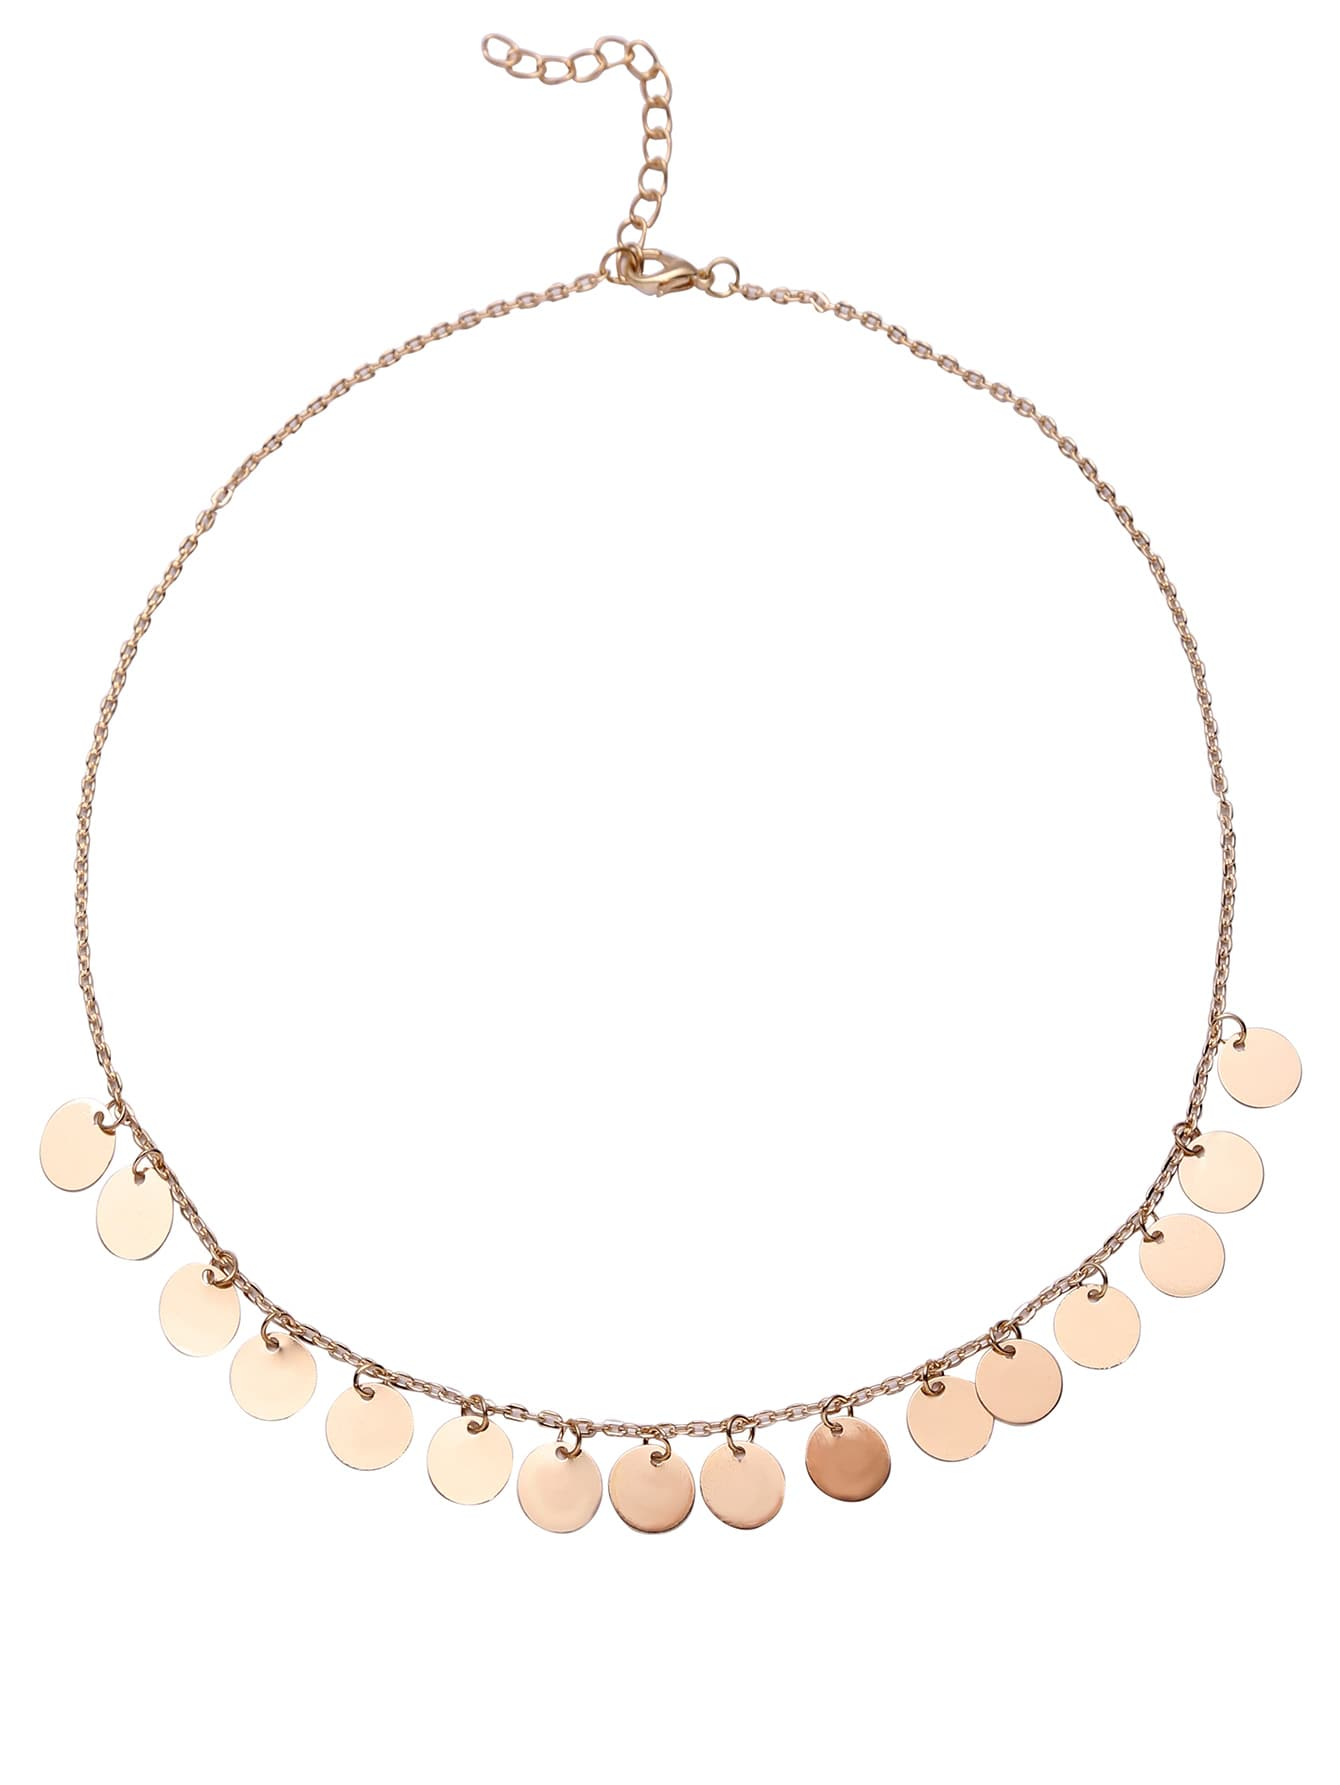 Gold Coin Fringe Delicate Chain Necklace